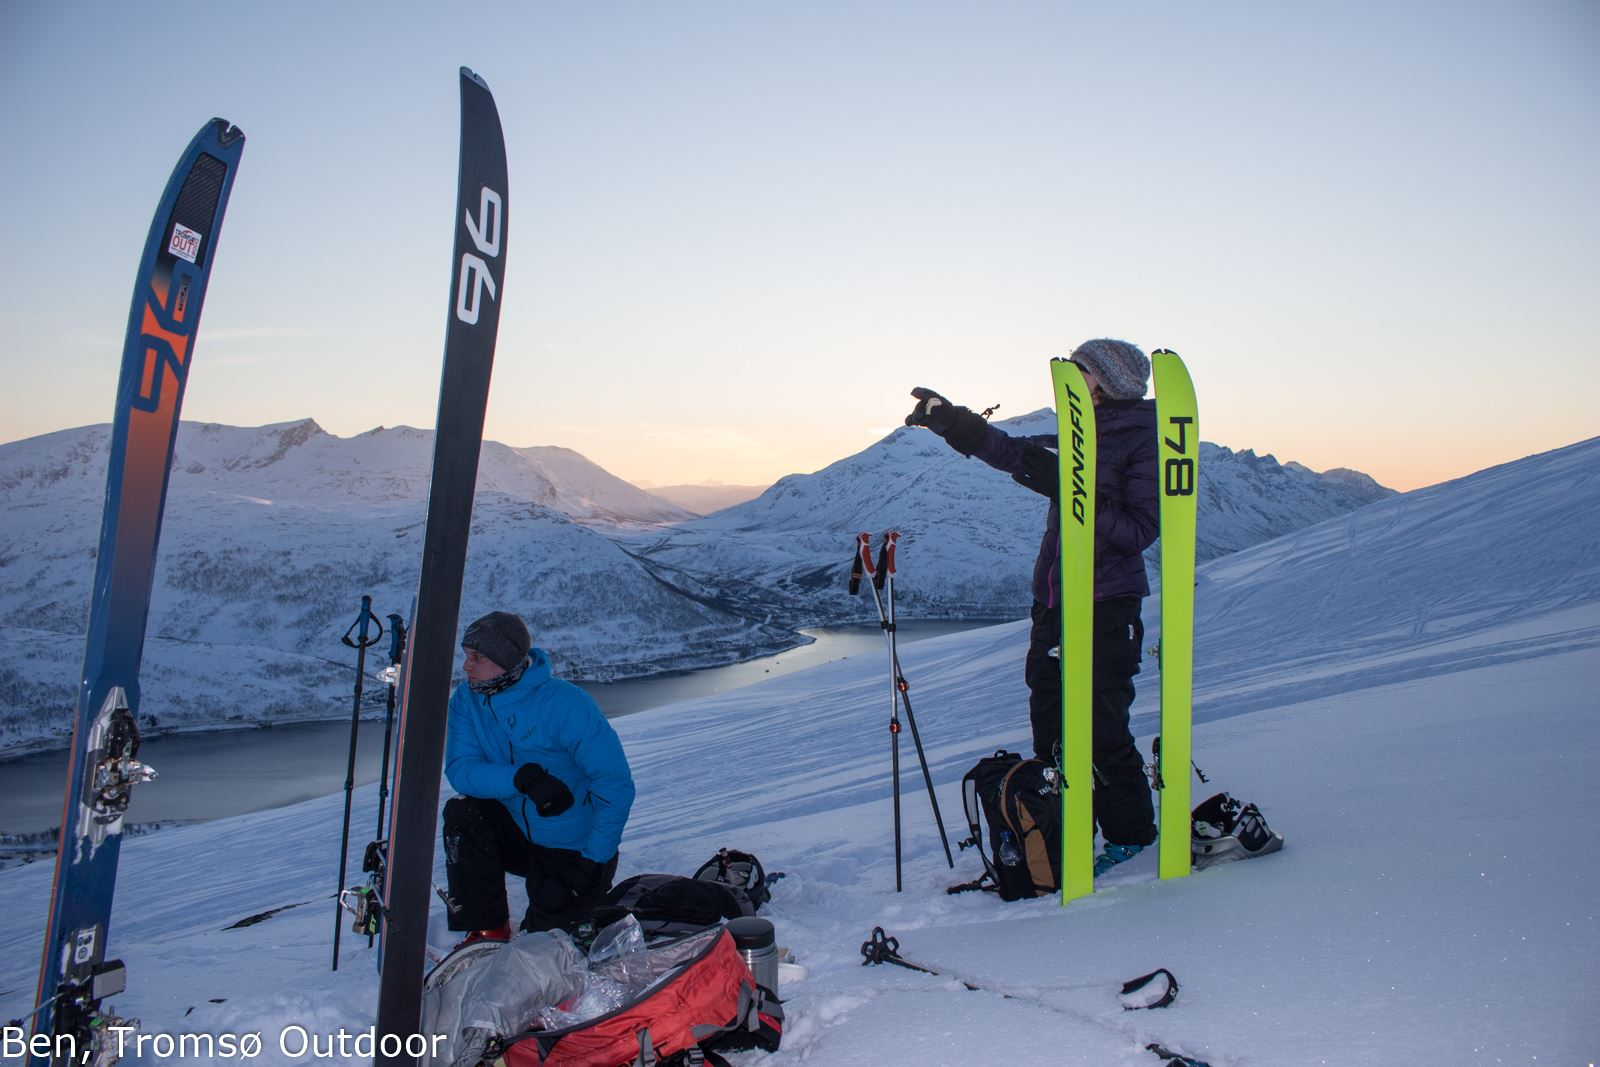 Introduction to Ski Touring - Guided trip for Alpine skiers